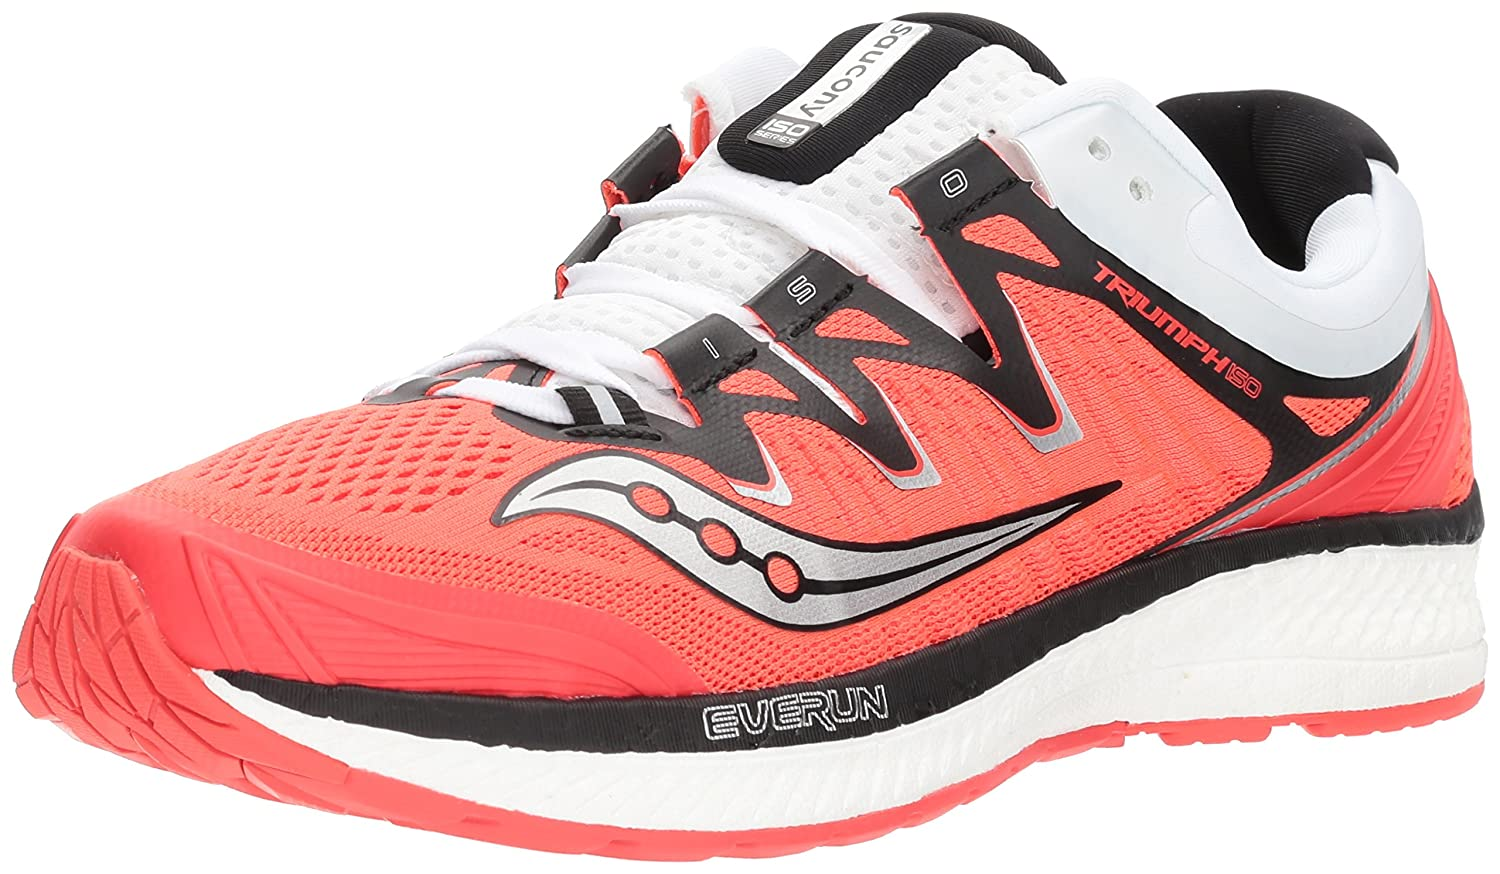 Saucony Women's Triumph Iso 4 Running Shoe B072JTVTTL 6 B(M) US|Vizi Red/White